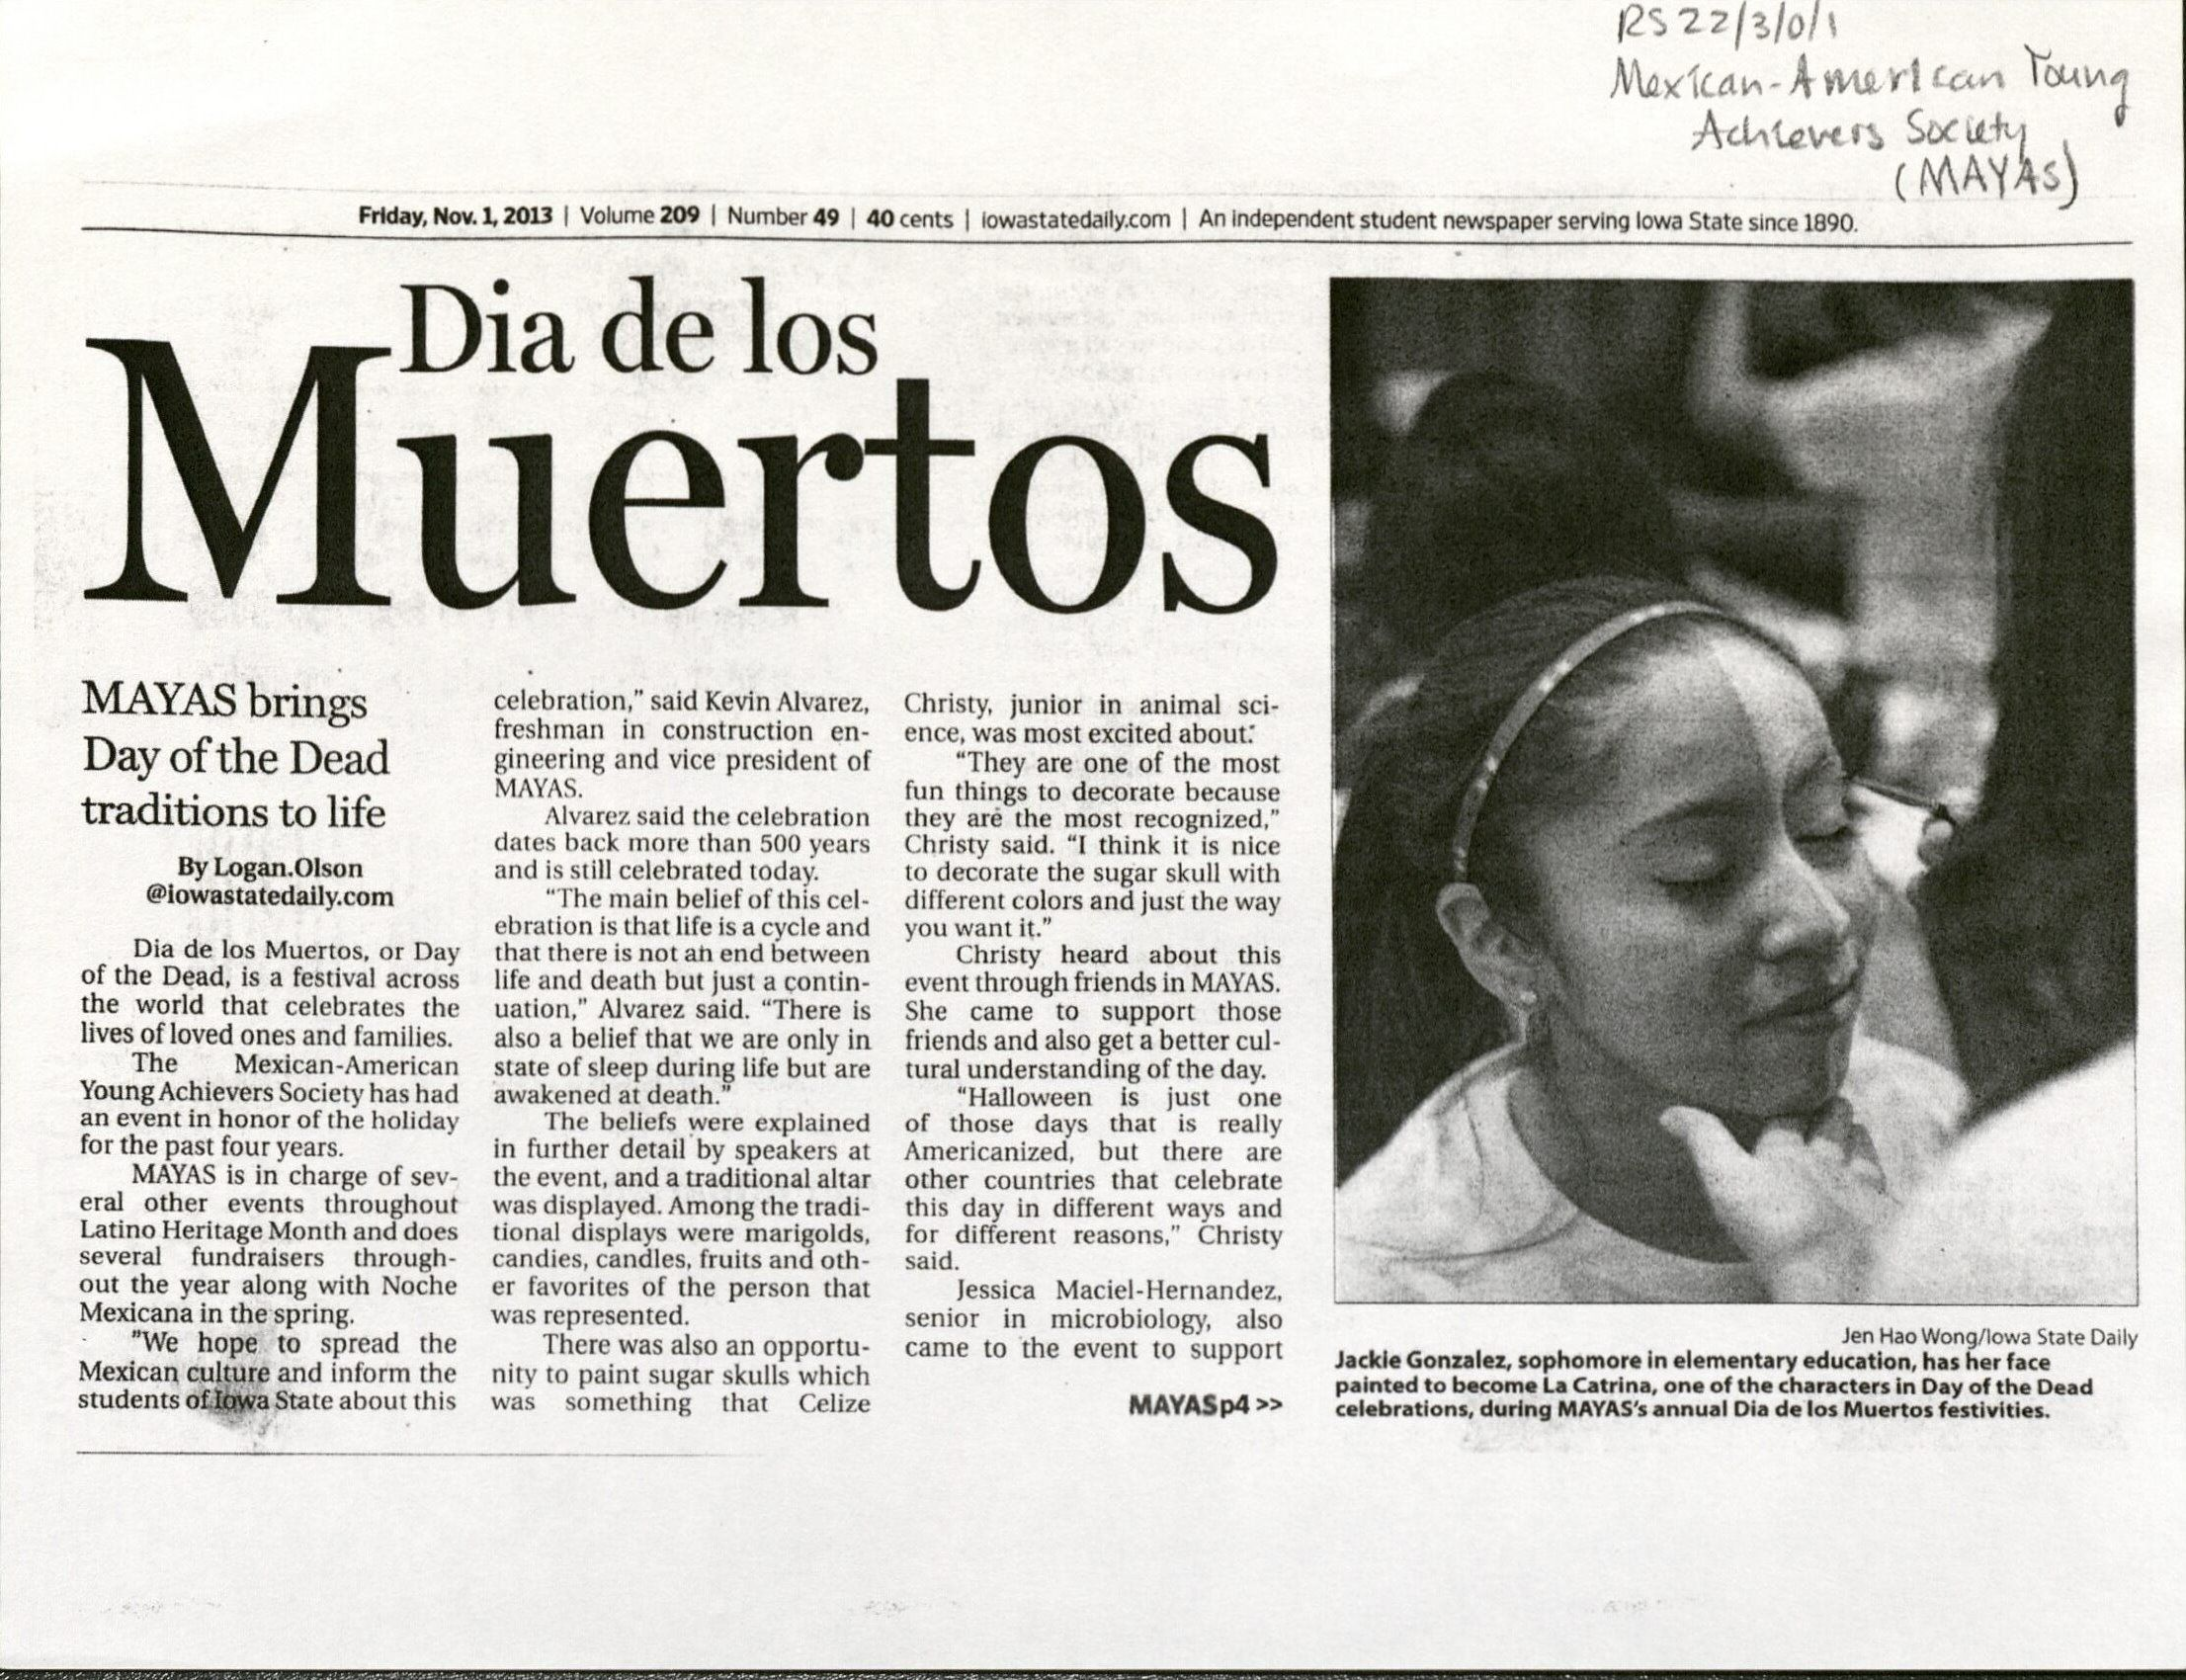 """2013 article from the Iowa State Daily titled """"Dia de los Muertos: MAYAS brings Day of the Dead traditions to life"""